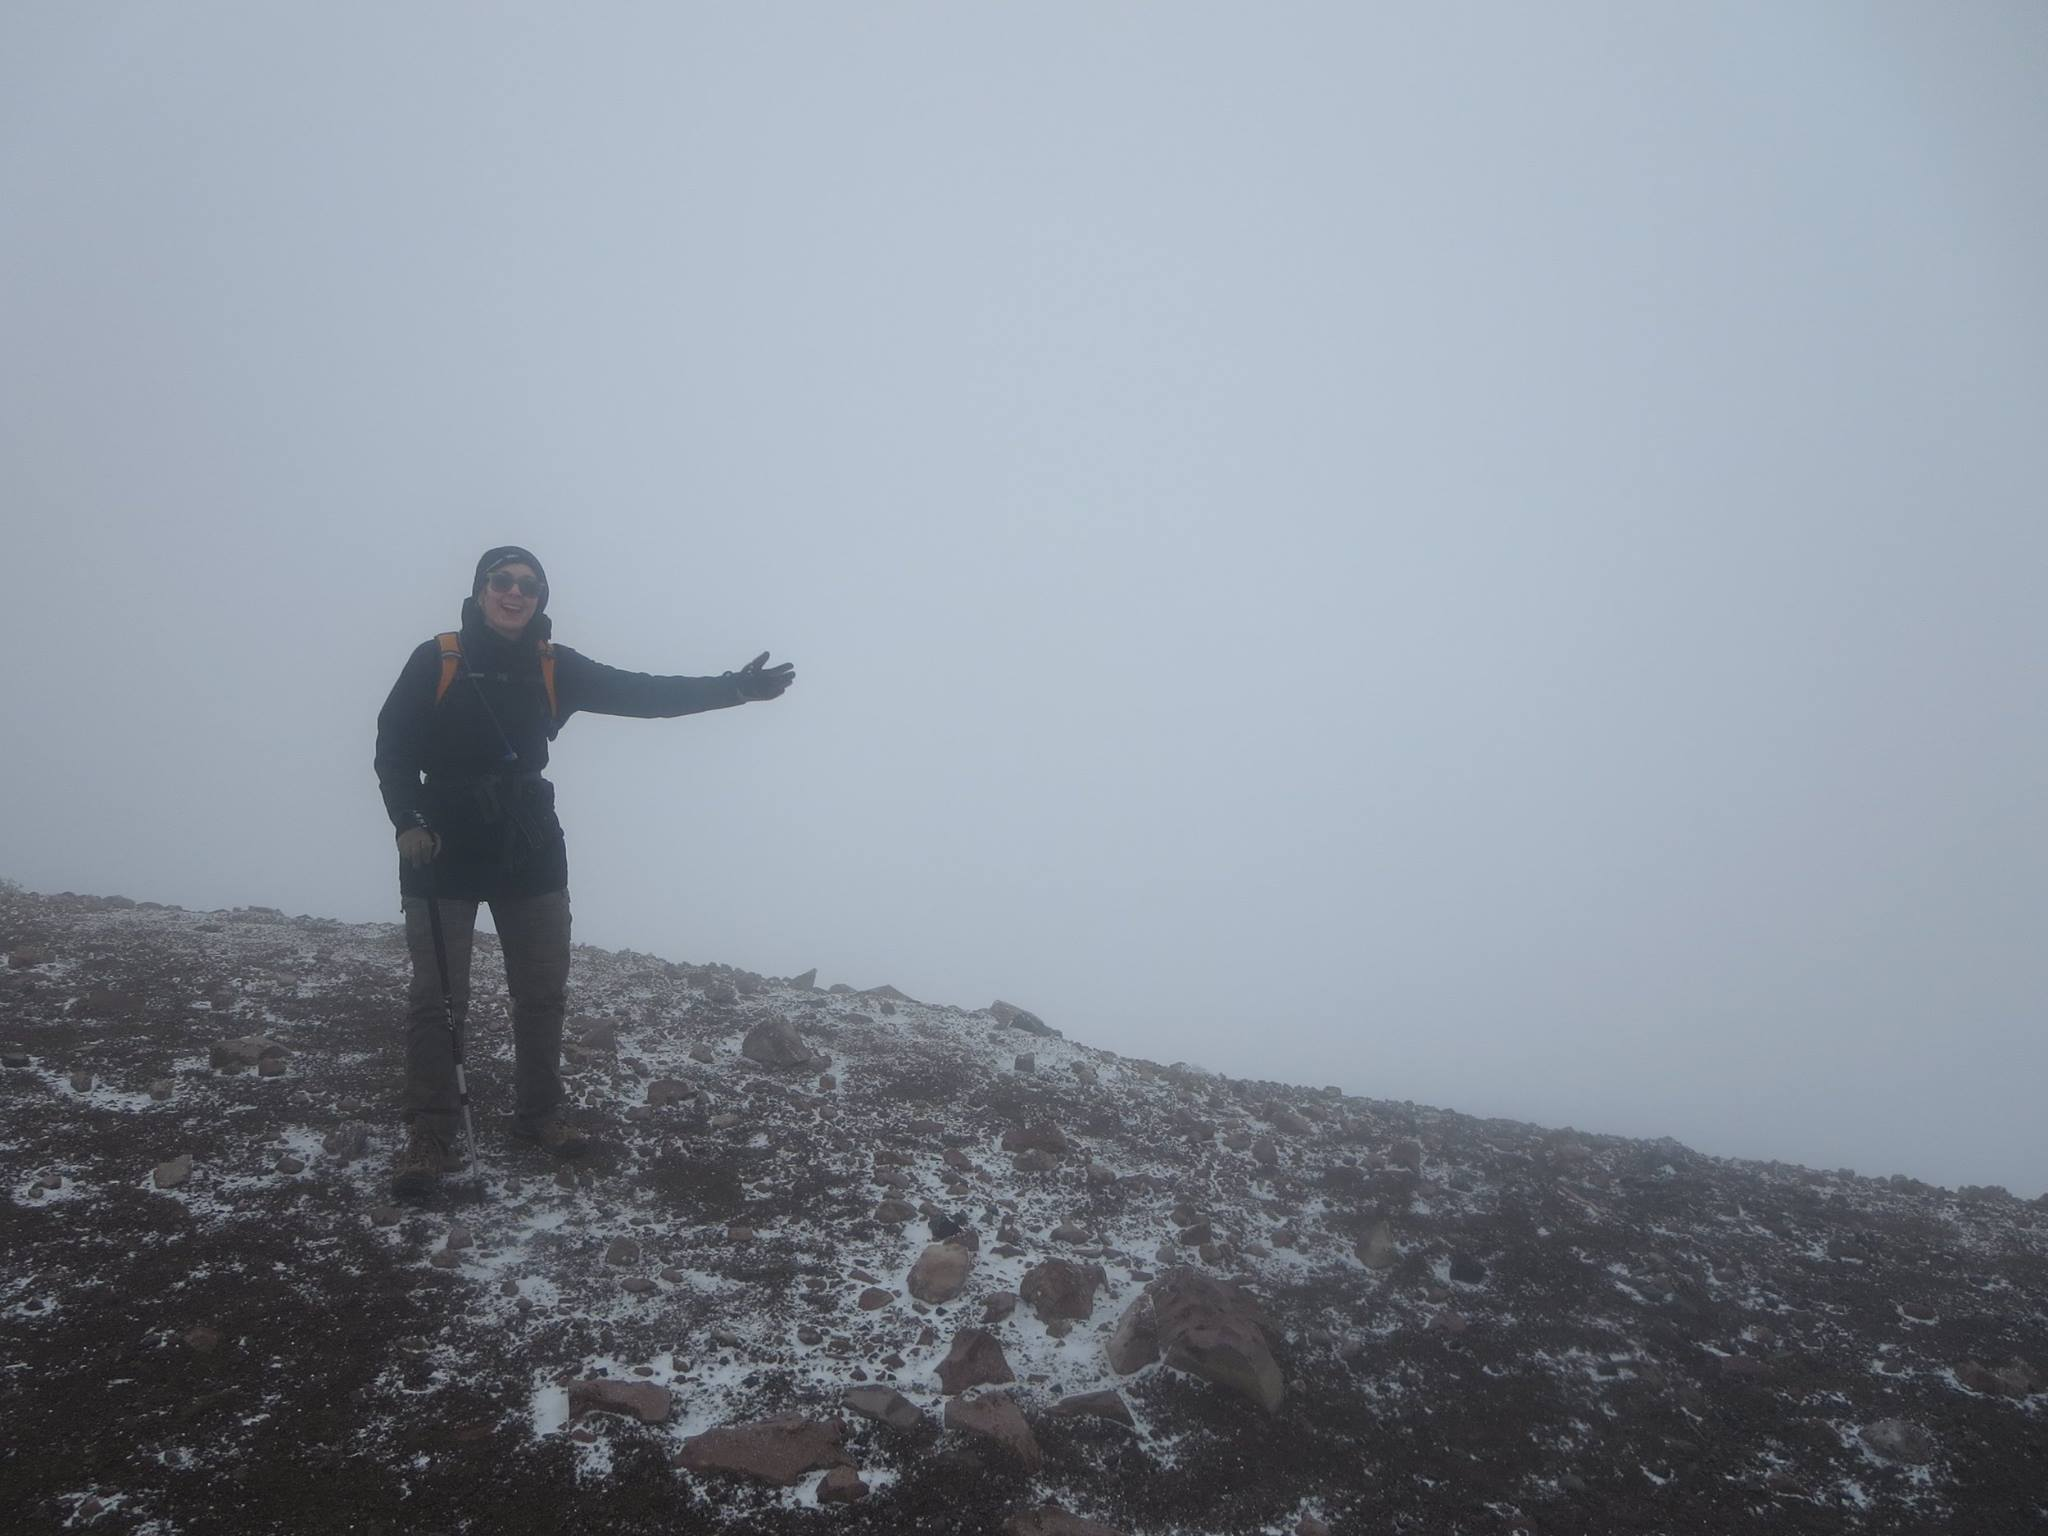 We reached the summit and saw… this.